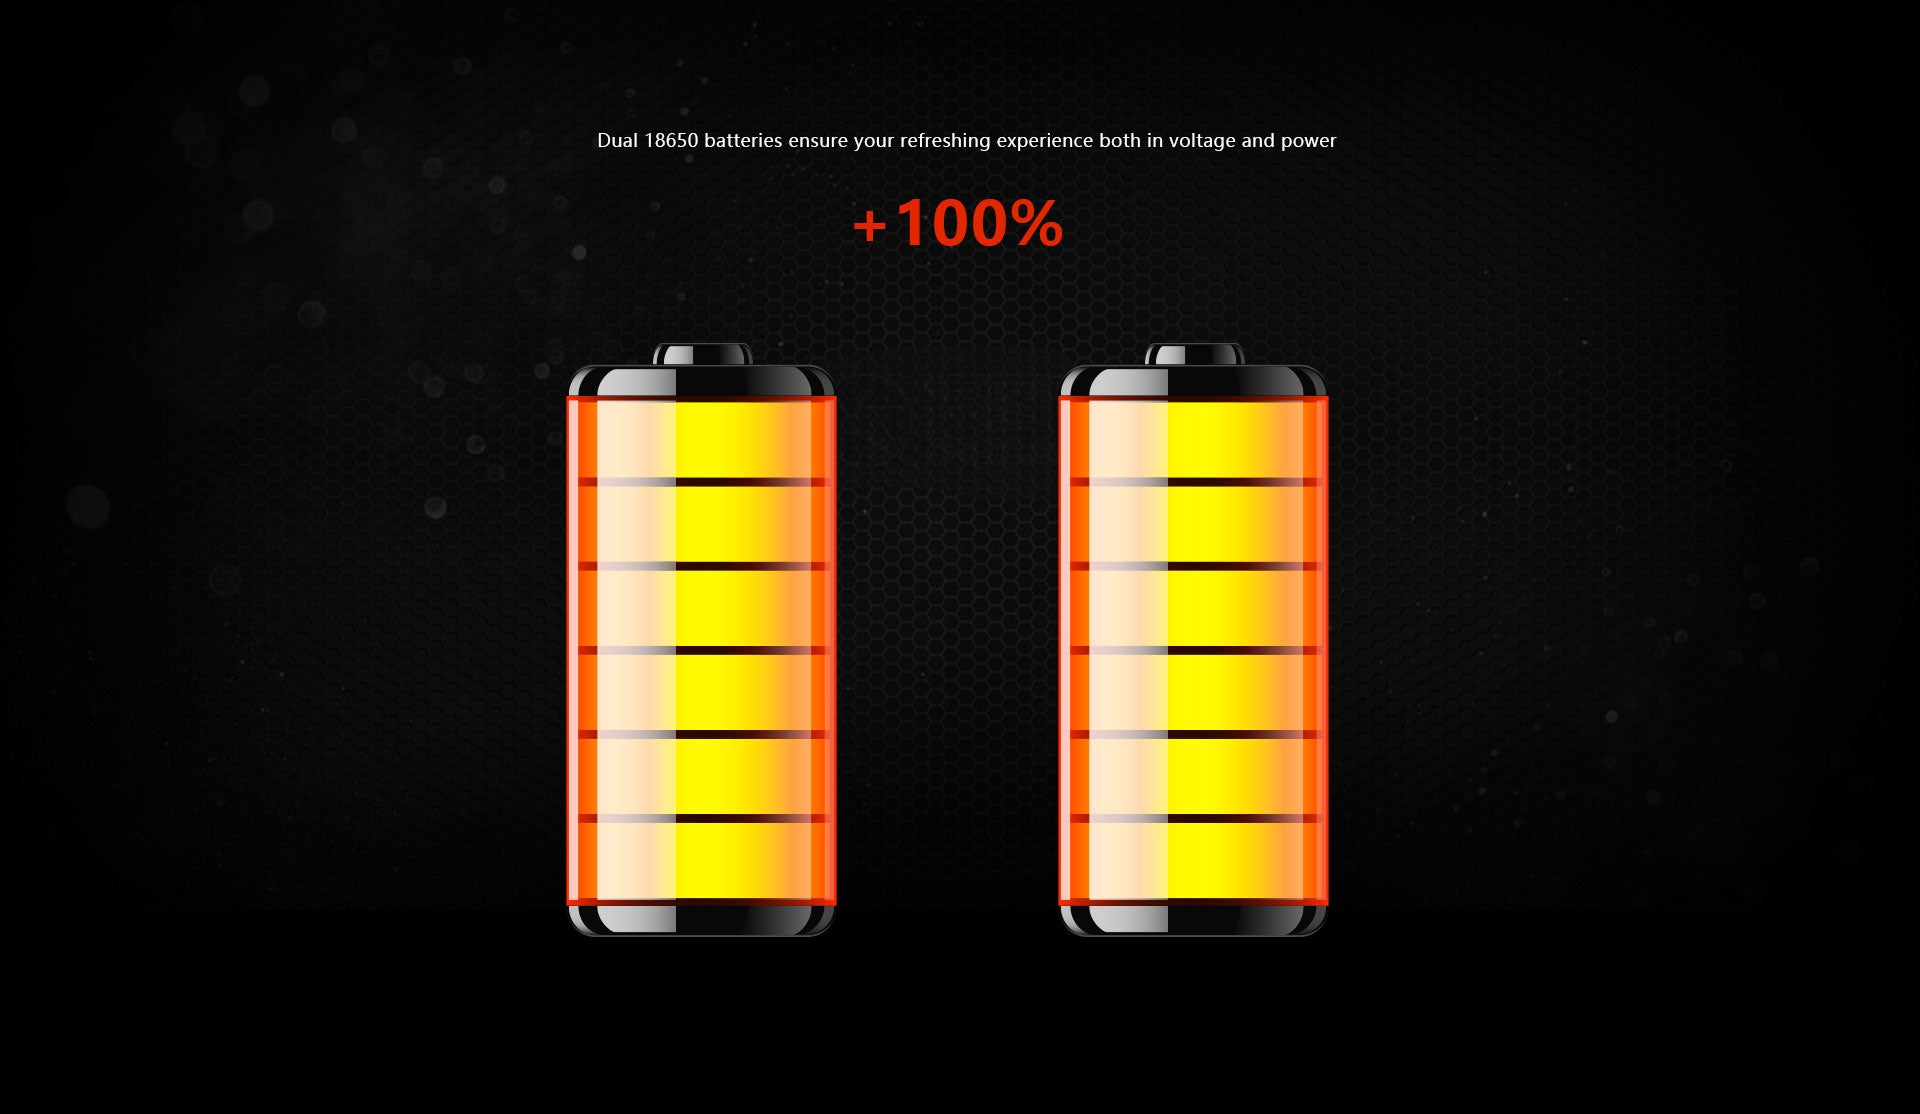 Dual 18650 batteries ensure your refreshing experience both in voltage and power